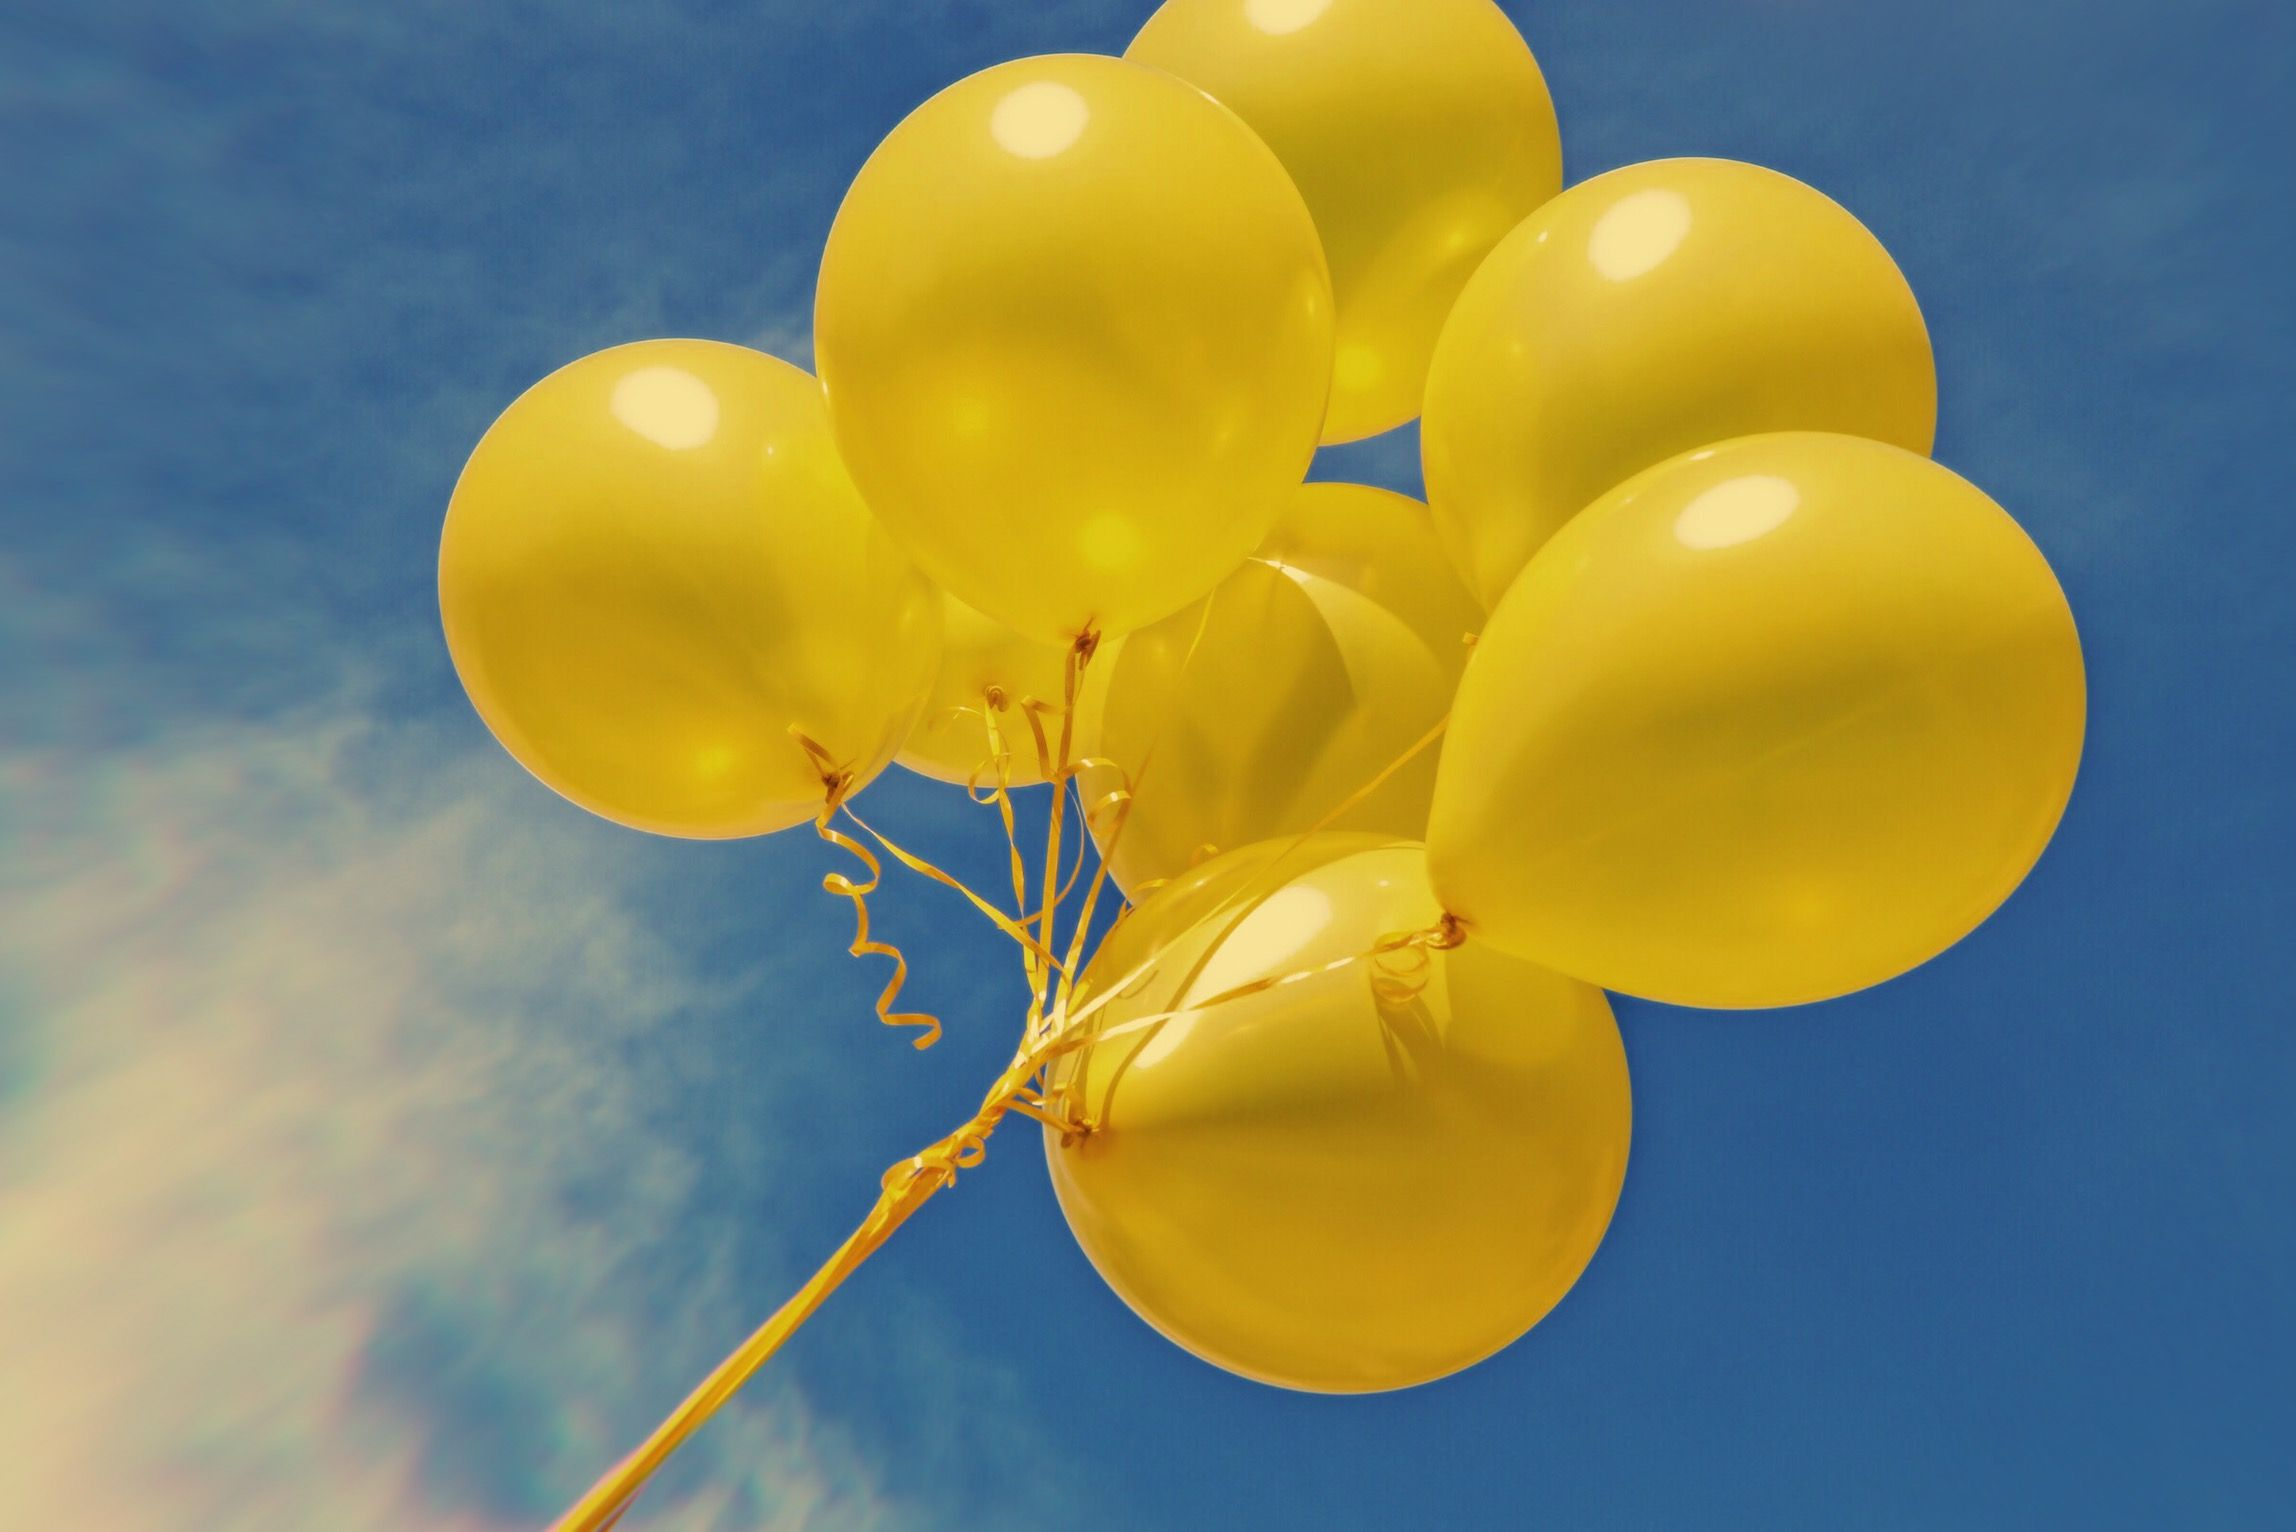 Yellow balloons aesthetic Yellow balloons, Balloons